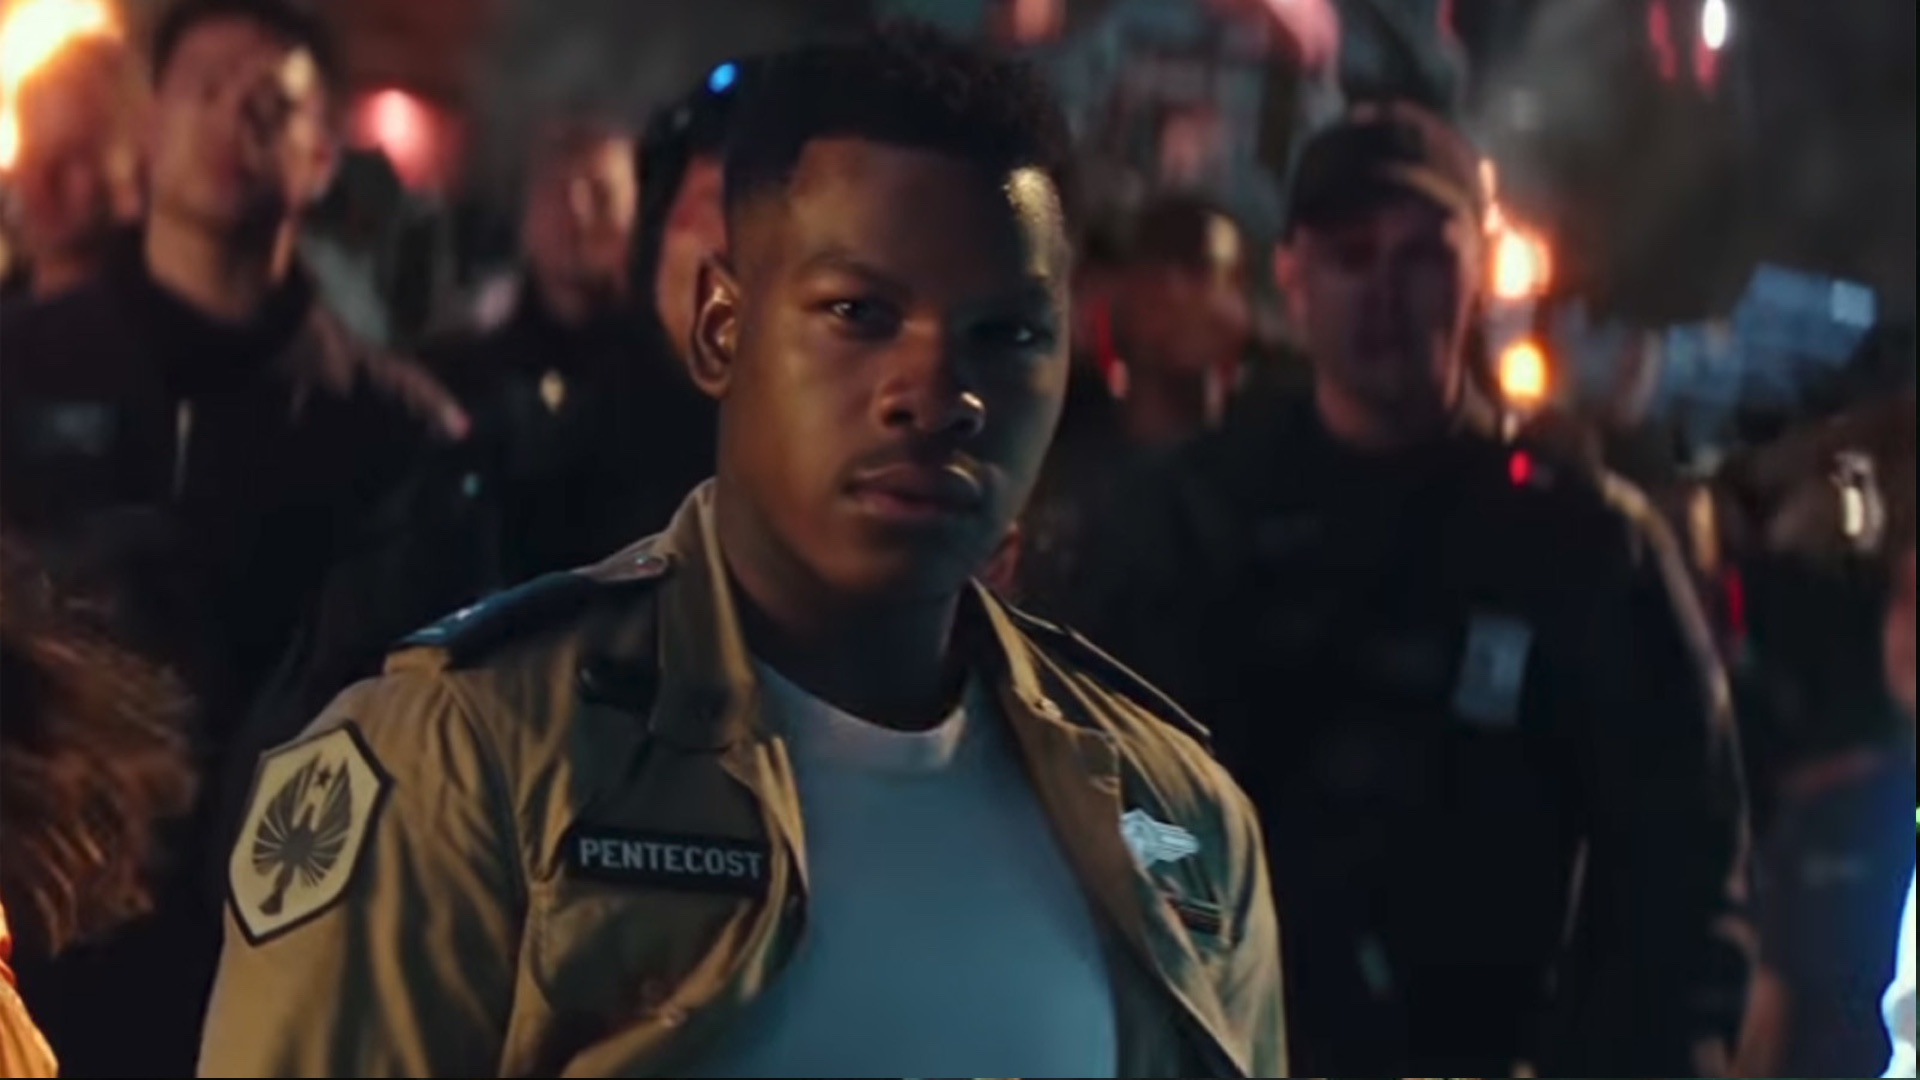 john-boyega-and-letitia-wright-set-to-star-in-a-new-sci-fi-film-called-hold-back-the-stars-social.jpg